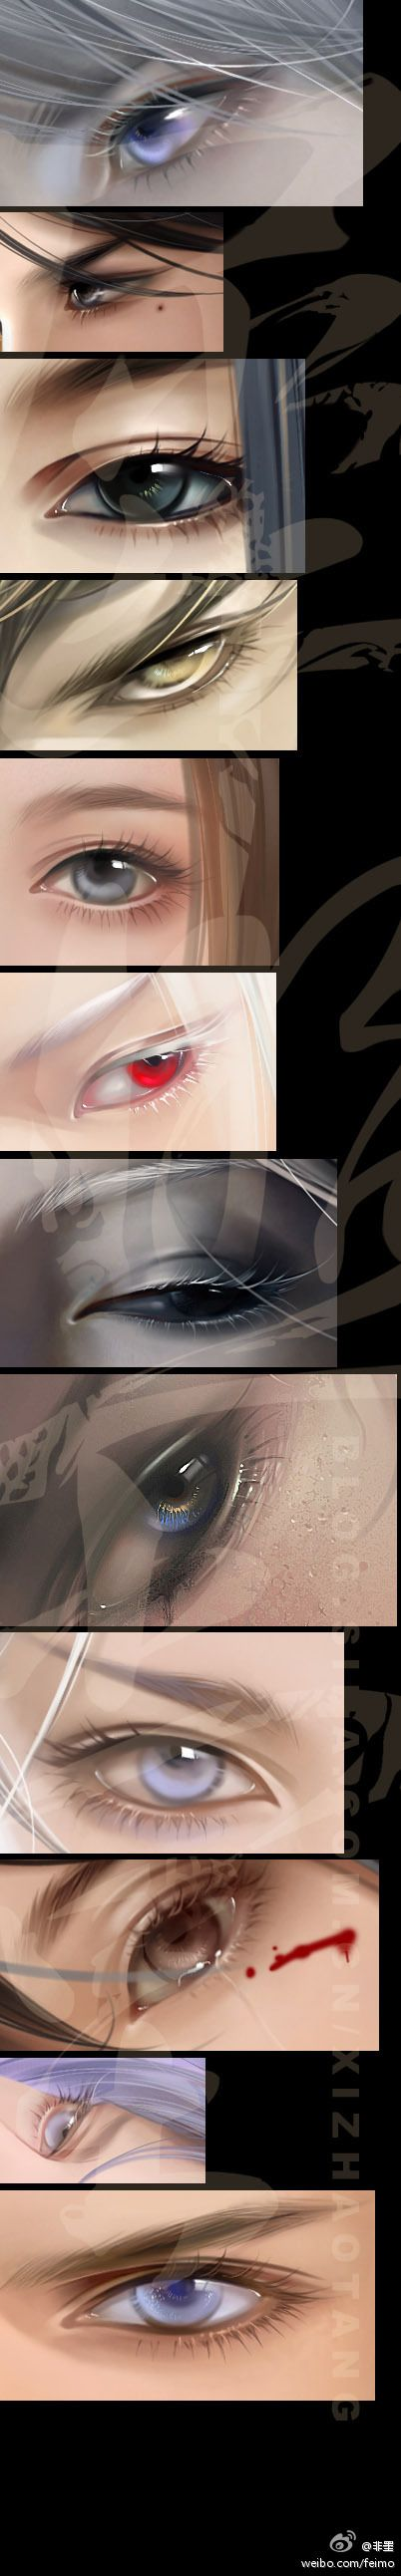 Those eyes though! - Anime, Video game's